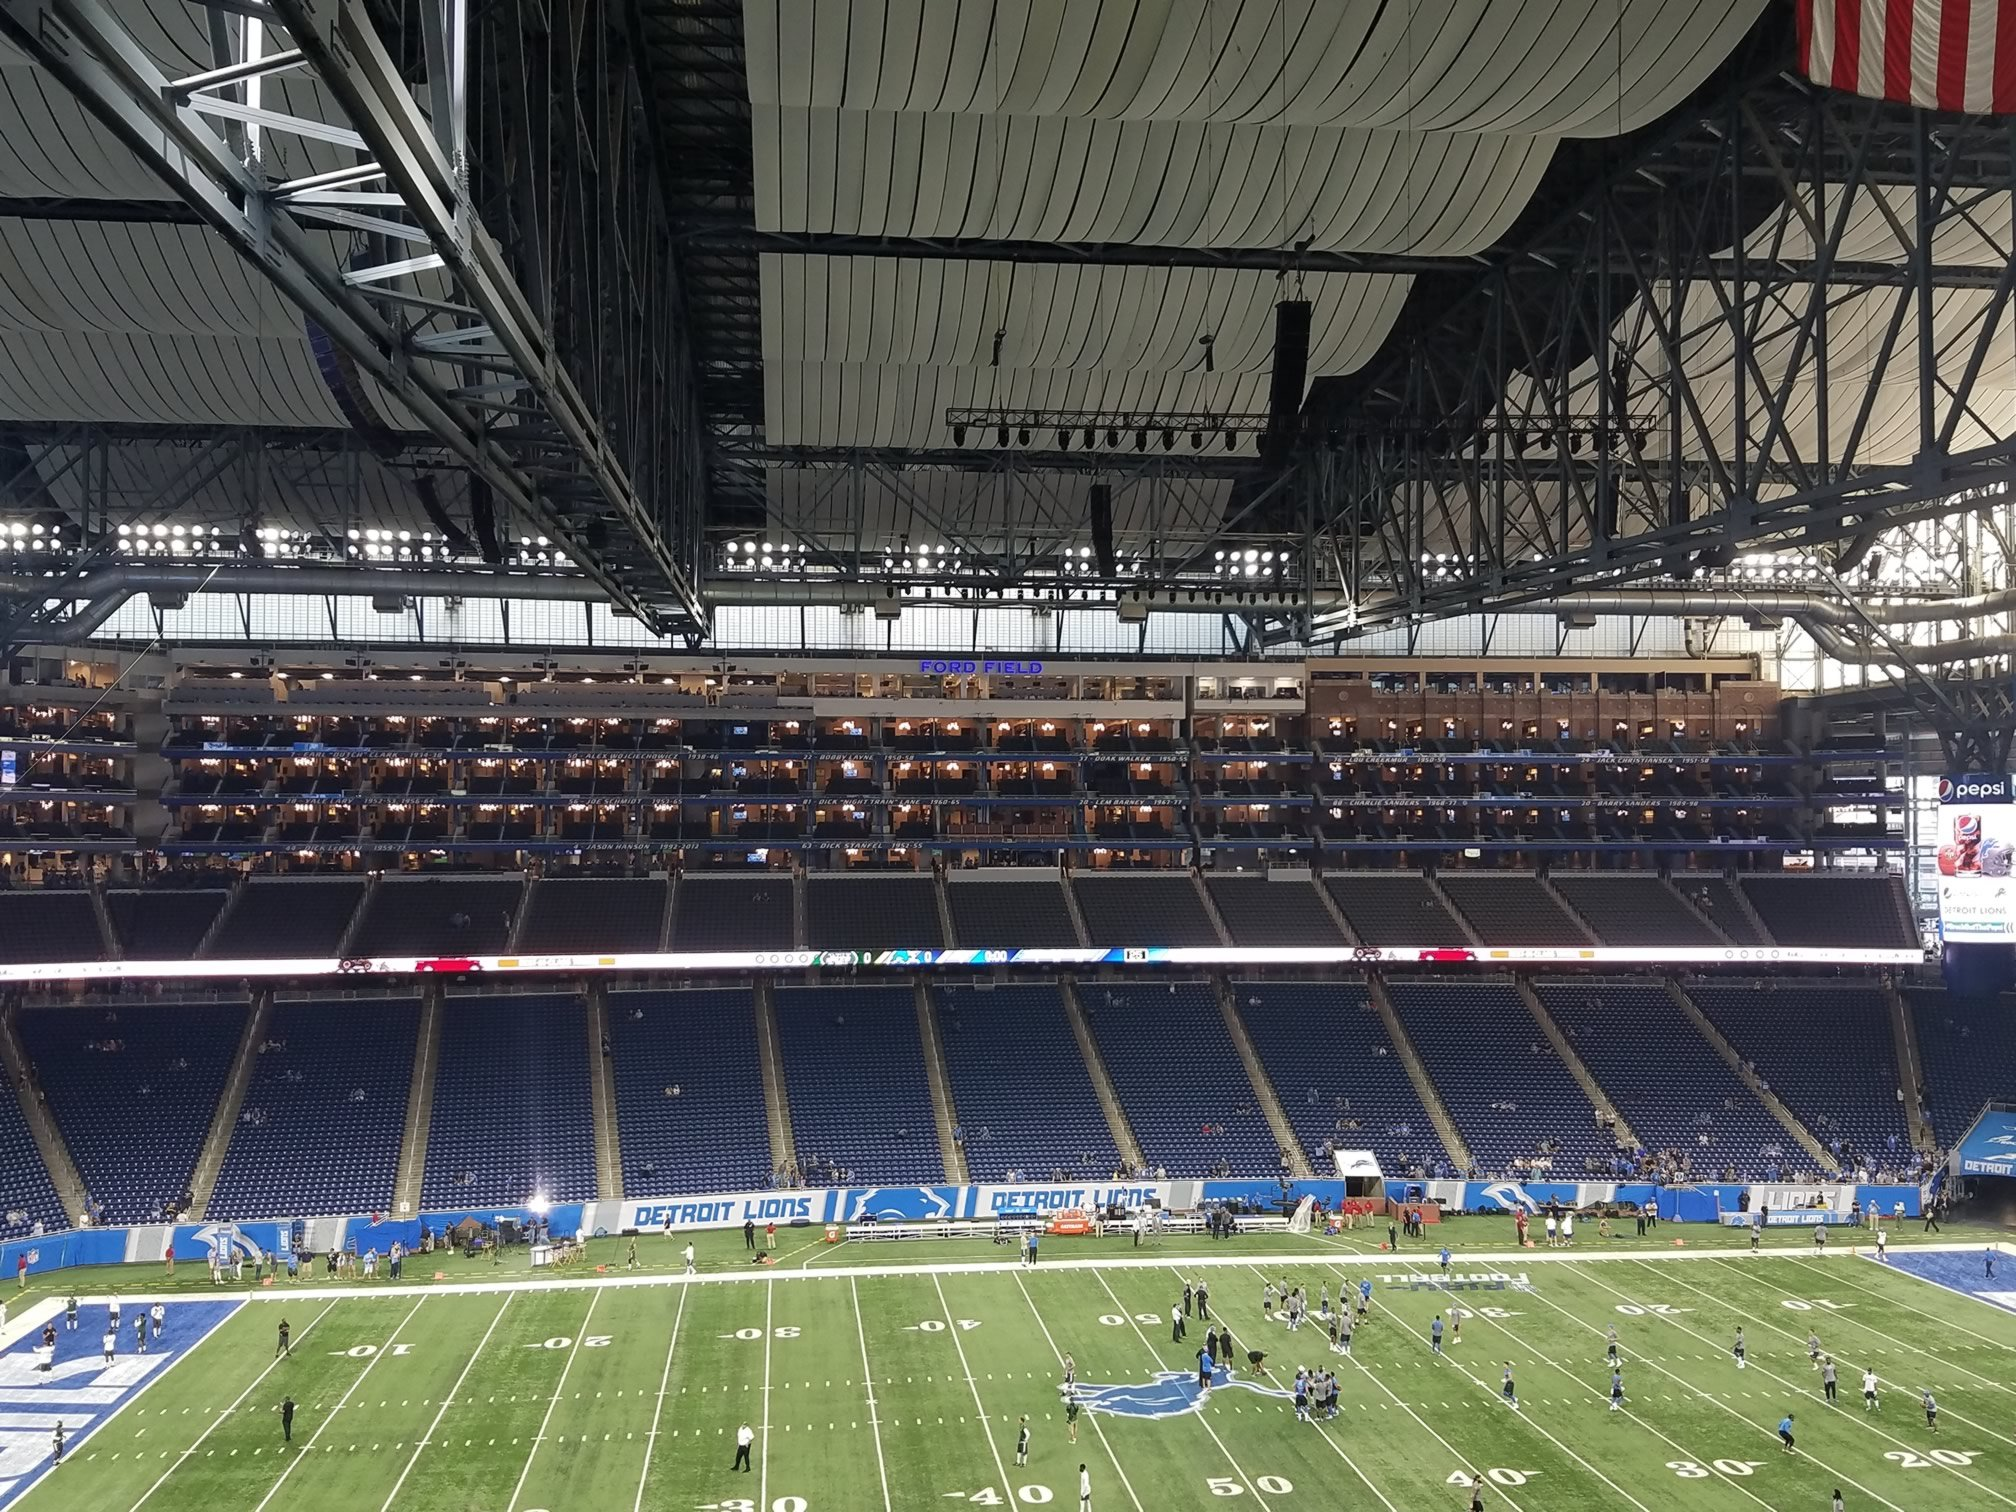 Ford Field Seating For Lions Games Rateyourseats Com